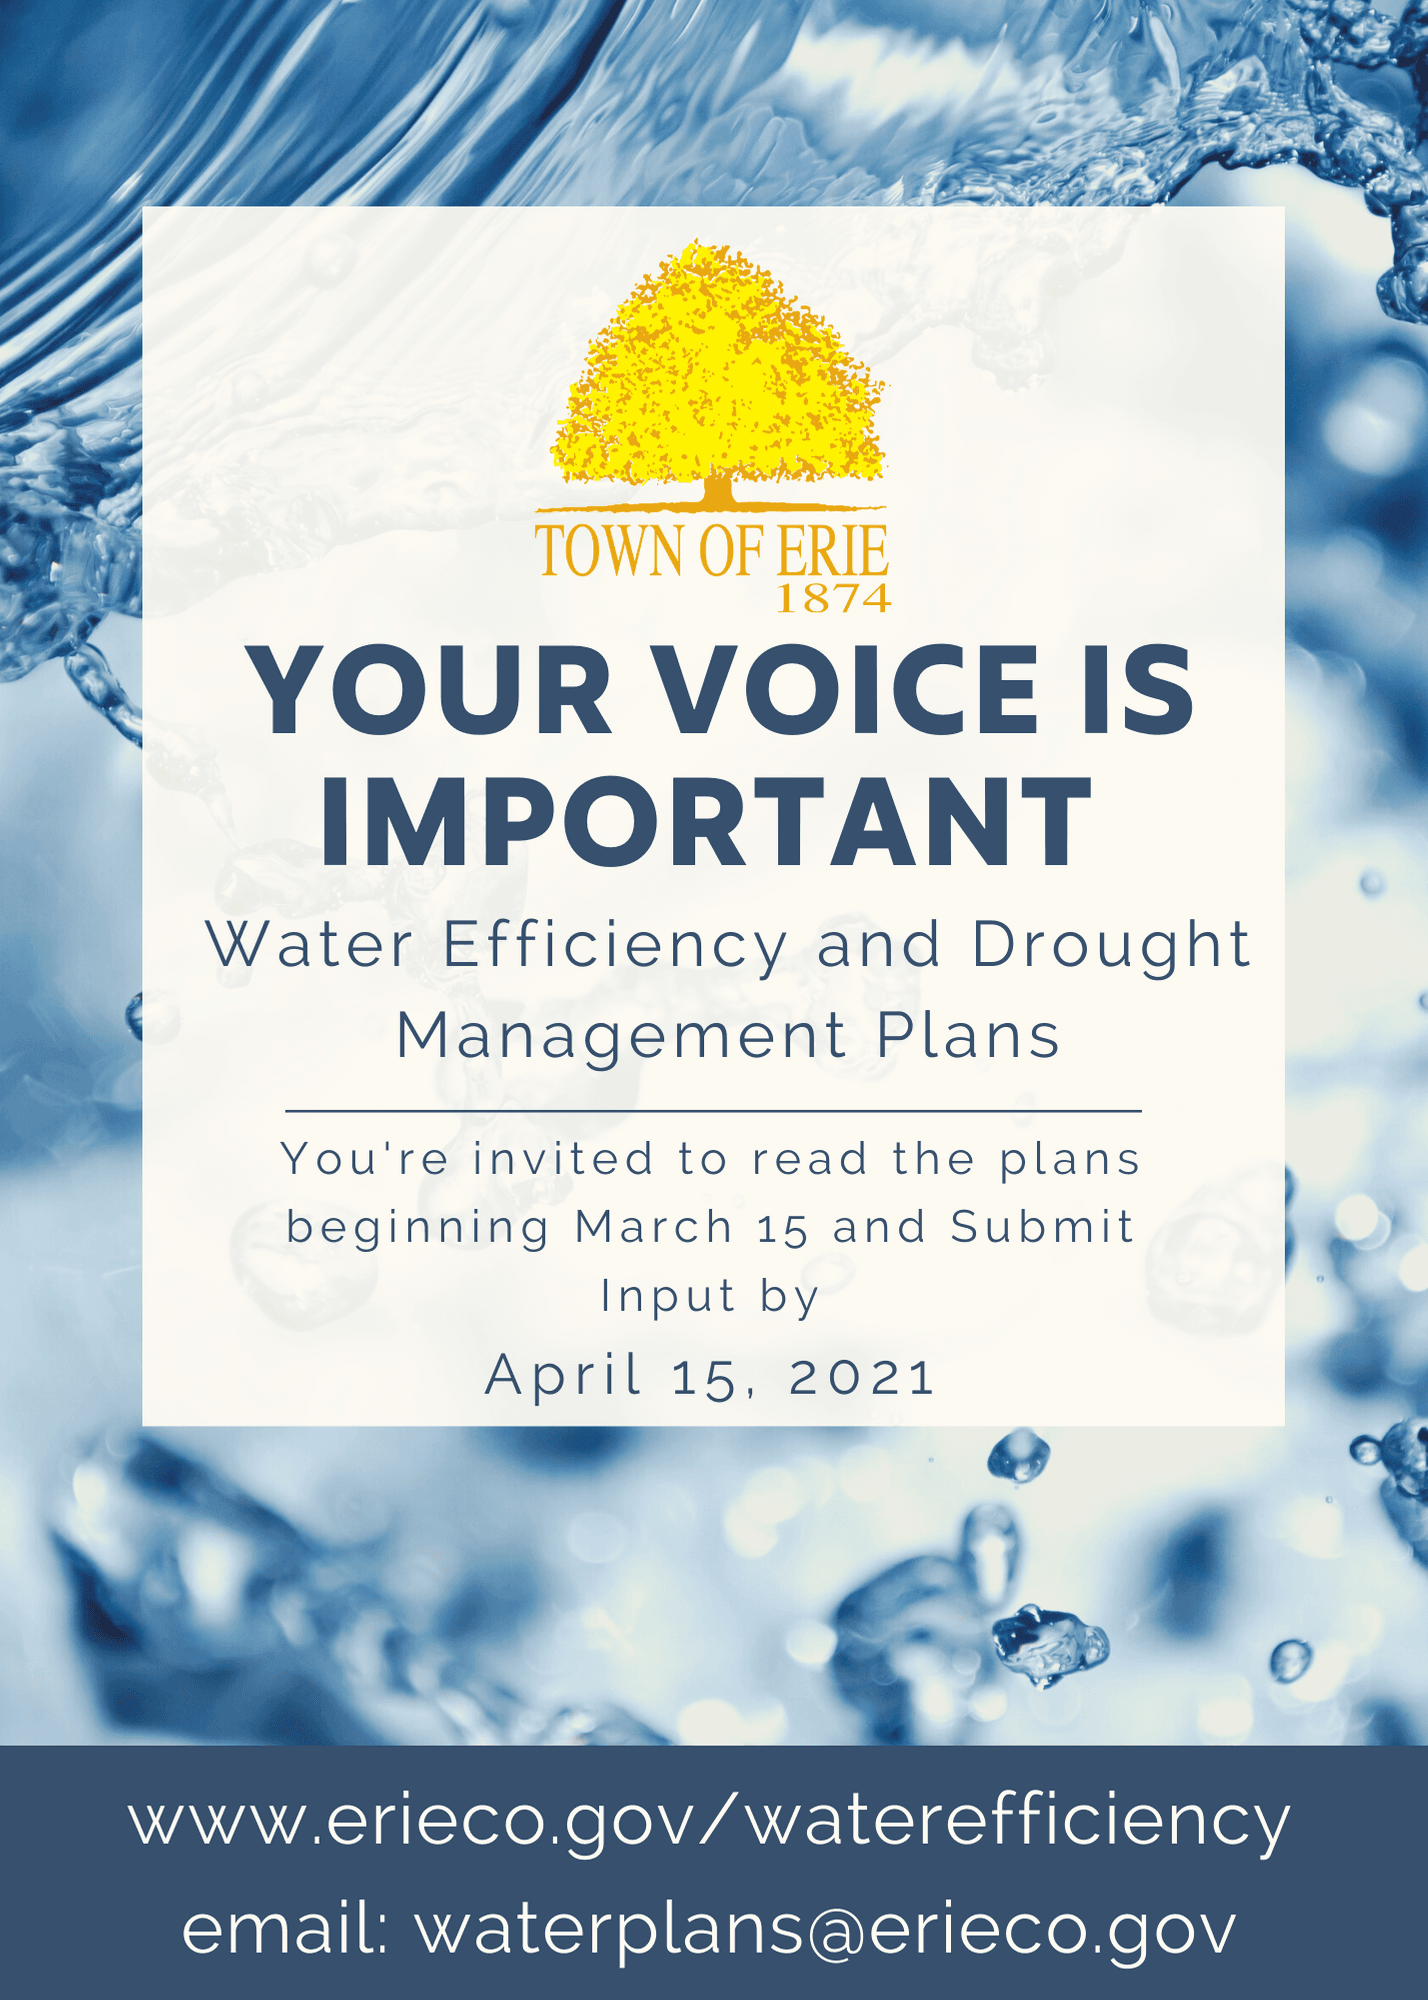 Water Efficiency and Drought Management Plans